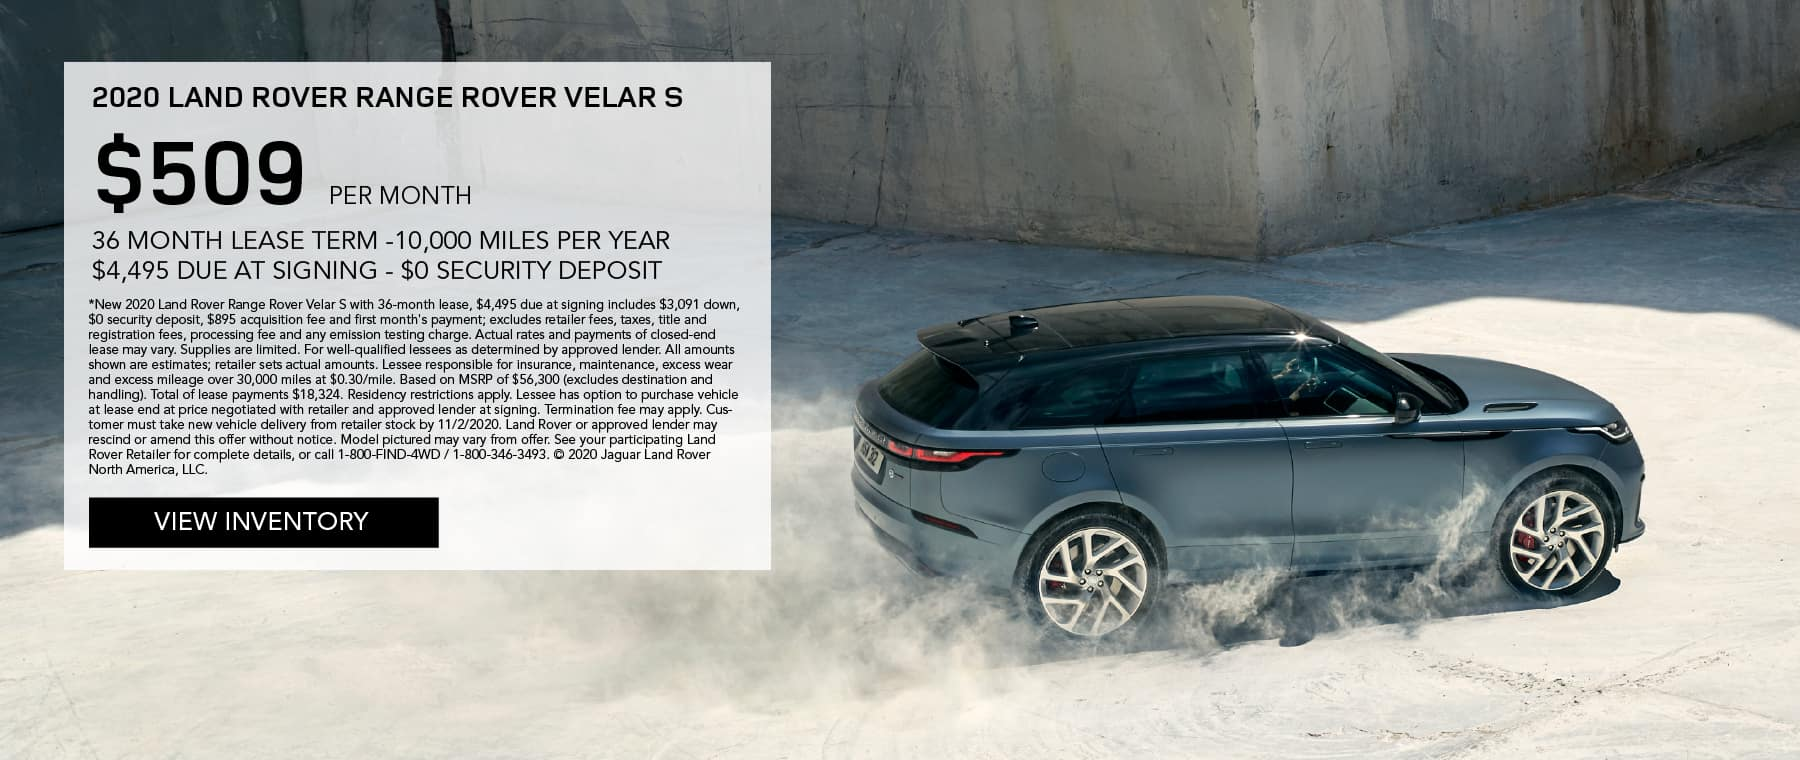 2020 RANGE ROVER VELAR S. $509 PER MONTH. 36 MONTH LEASE TERM. $4,495 CASH DUE AT SIGNING. $0 SECURITY DEPOSIT. 10,000 MILES PER YEAR. EXCLUDES RETAILER FEES, TAXES, TITLE AND REGISTRATION FEES, PROCESSING FEE AND ANY EMISSION TESTING CHARGE. ENDS 11/2/2020. VIEW INVENTORY. BLUE RANGE ROVER VELAR DRIVING DOWN DIRT ROAD.